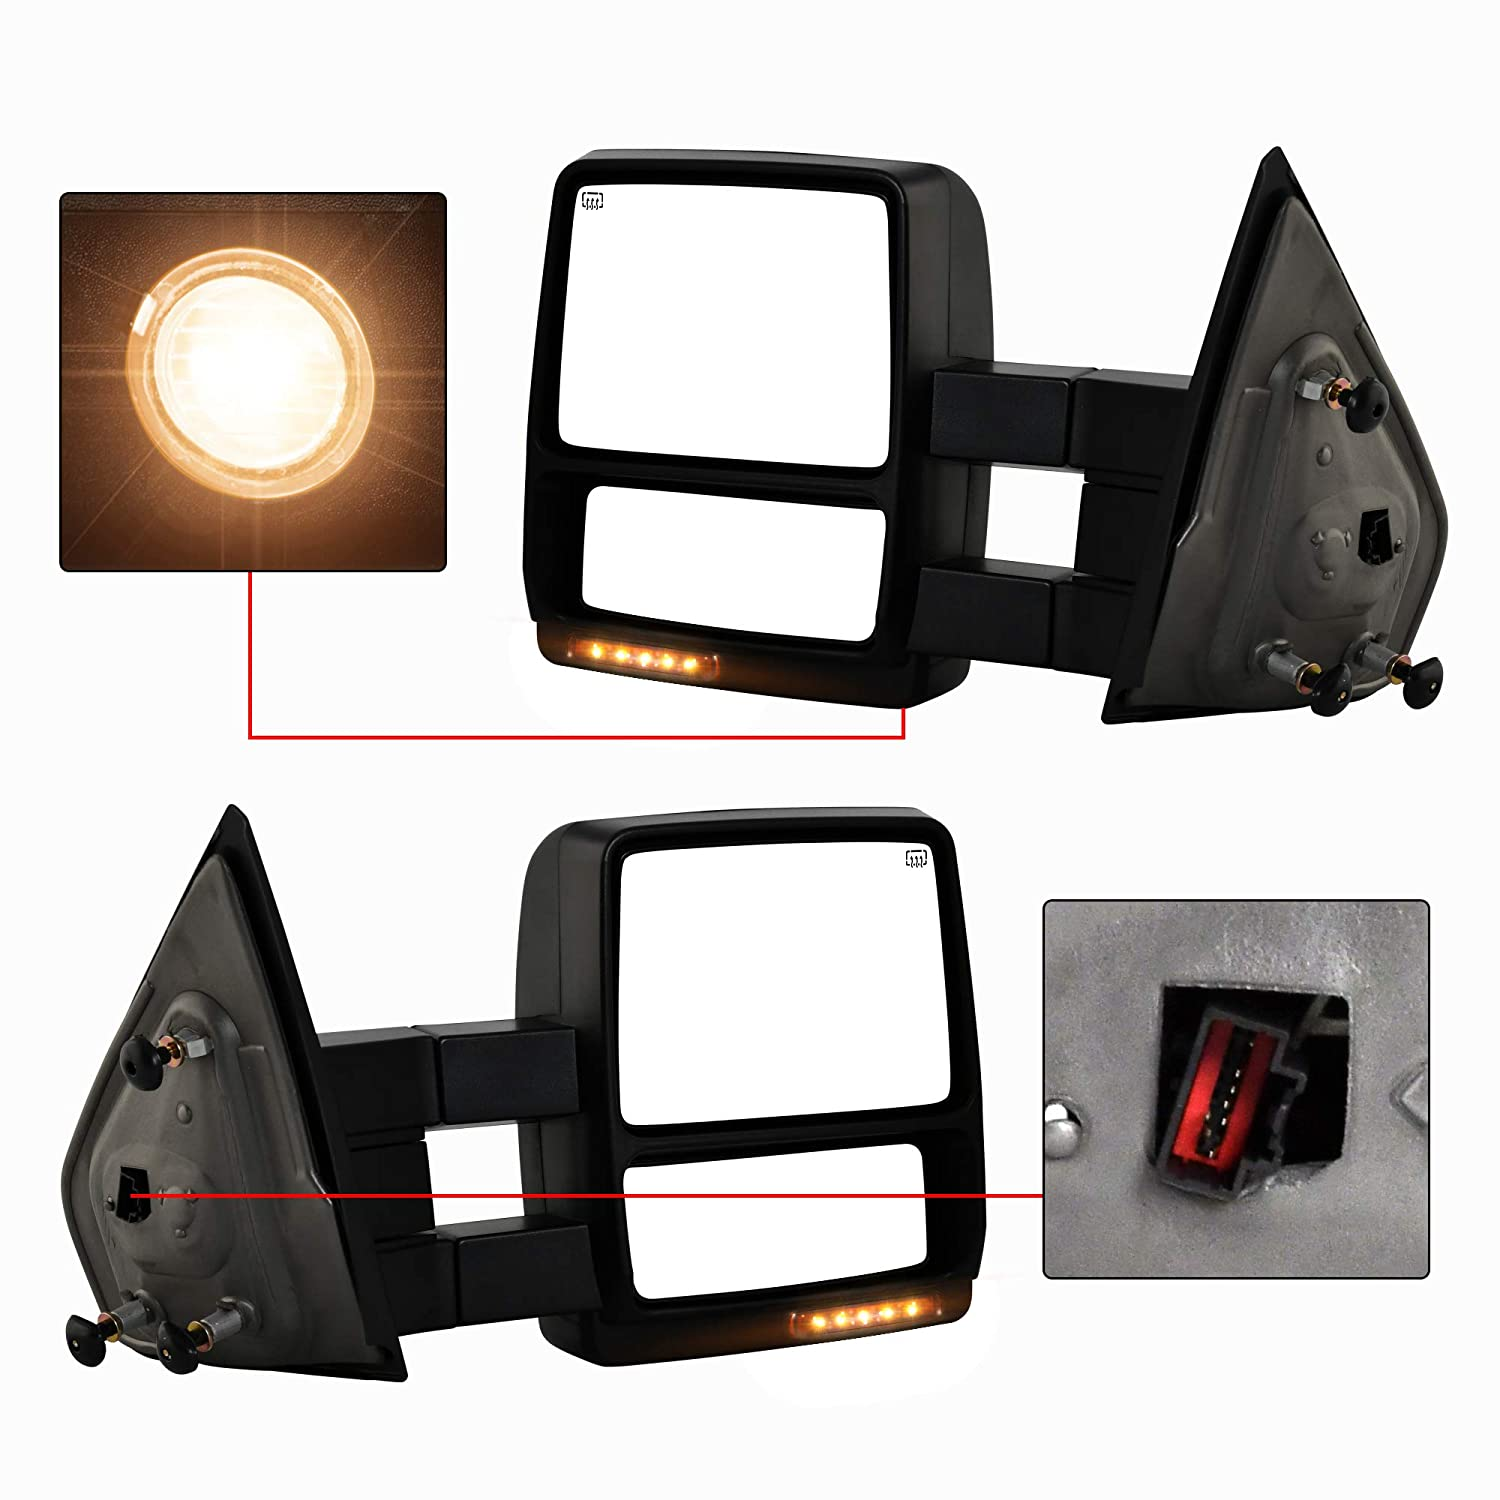 Make Auto Parts Manufacturing New Left//Driver and Right//Passenger Side Power Heated Manual Folding Tow Mirror Pair For Ford F150 2004-2006 FO1320242 FO1321321 FO1320321 FO1321242